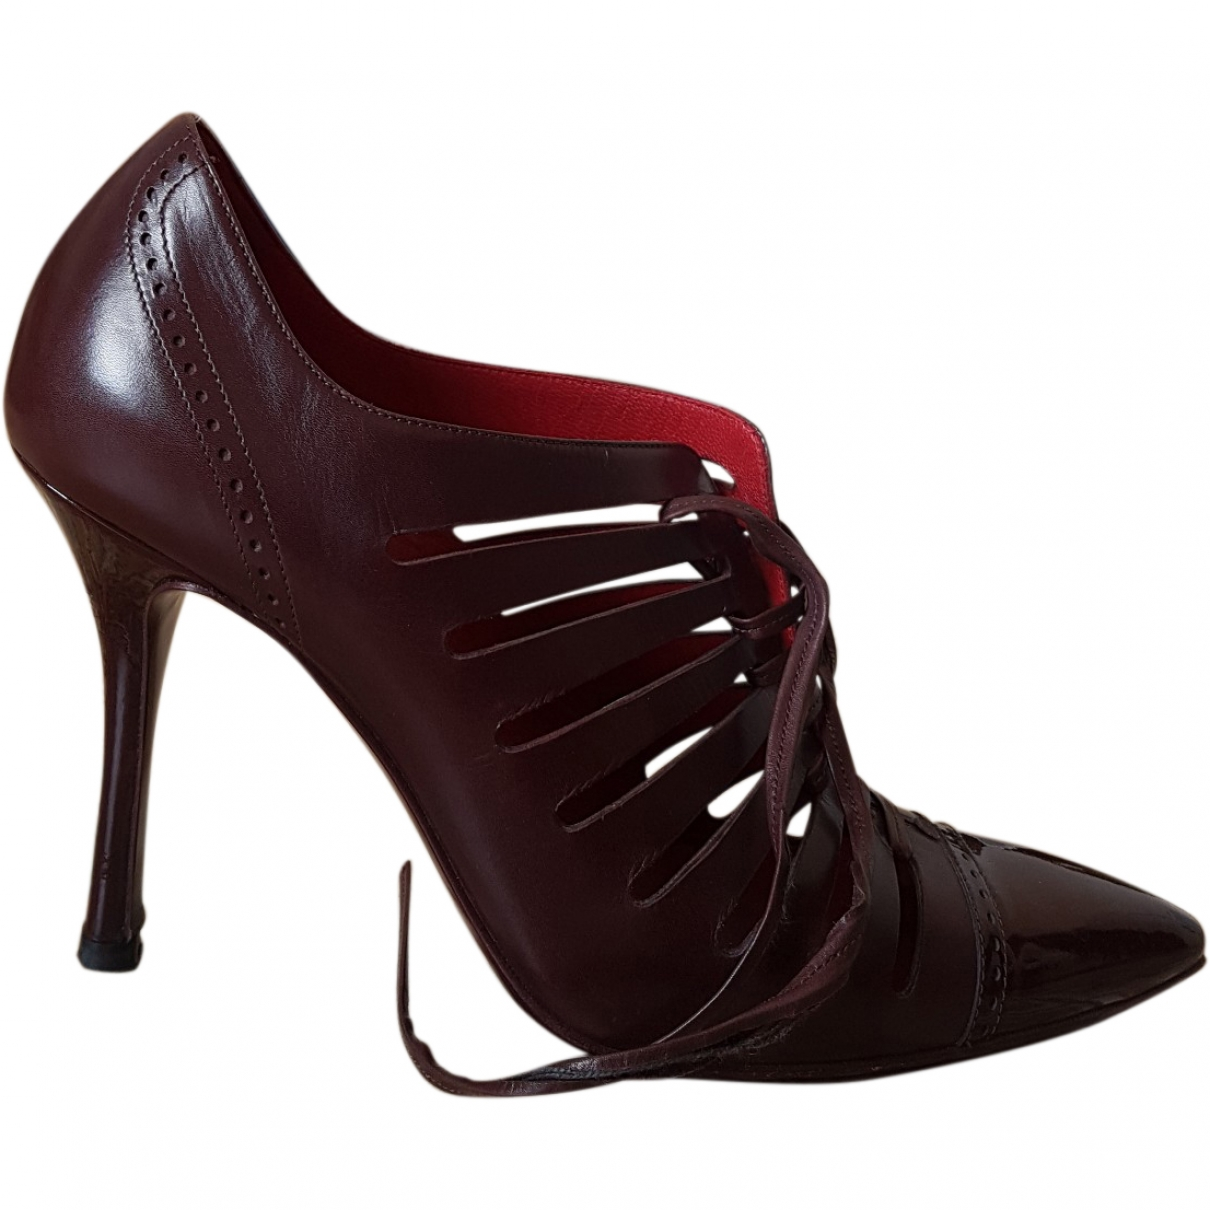 Celine \N Burgundy Leather Heels for Women 37 EU